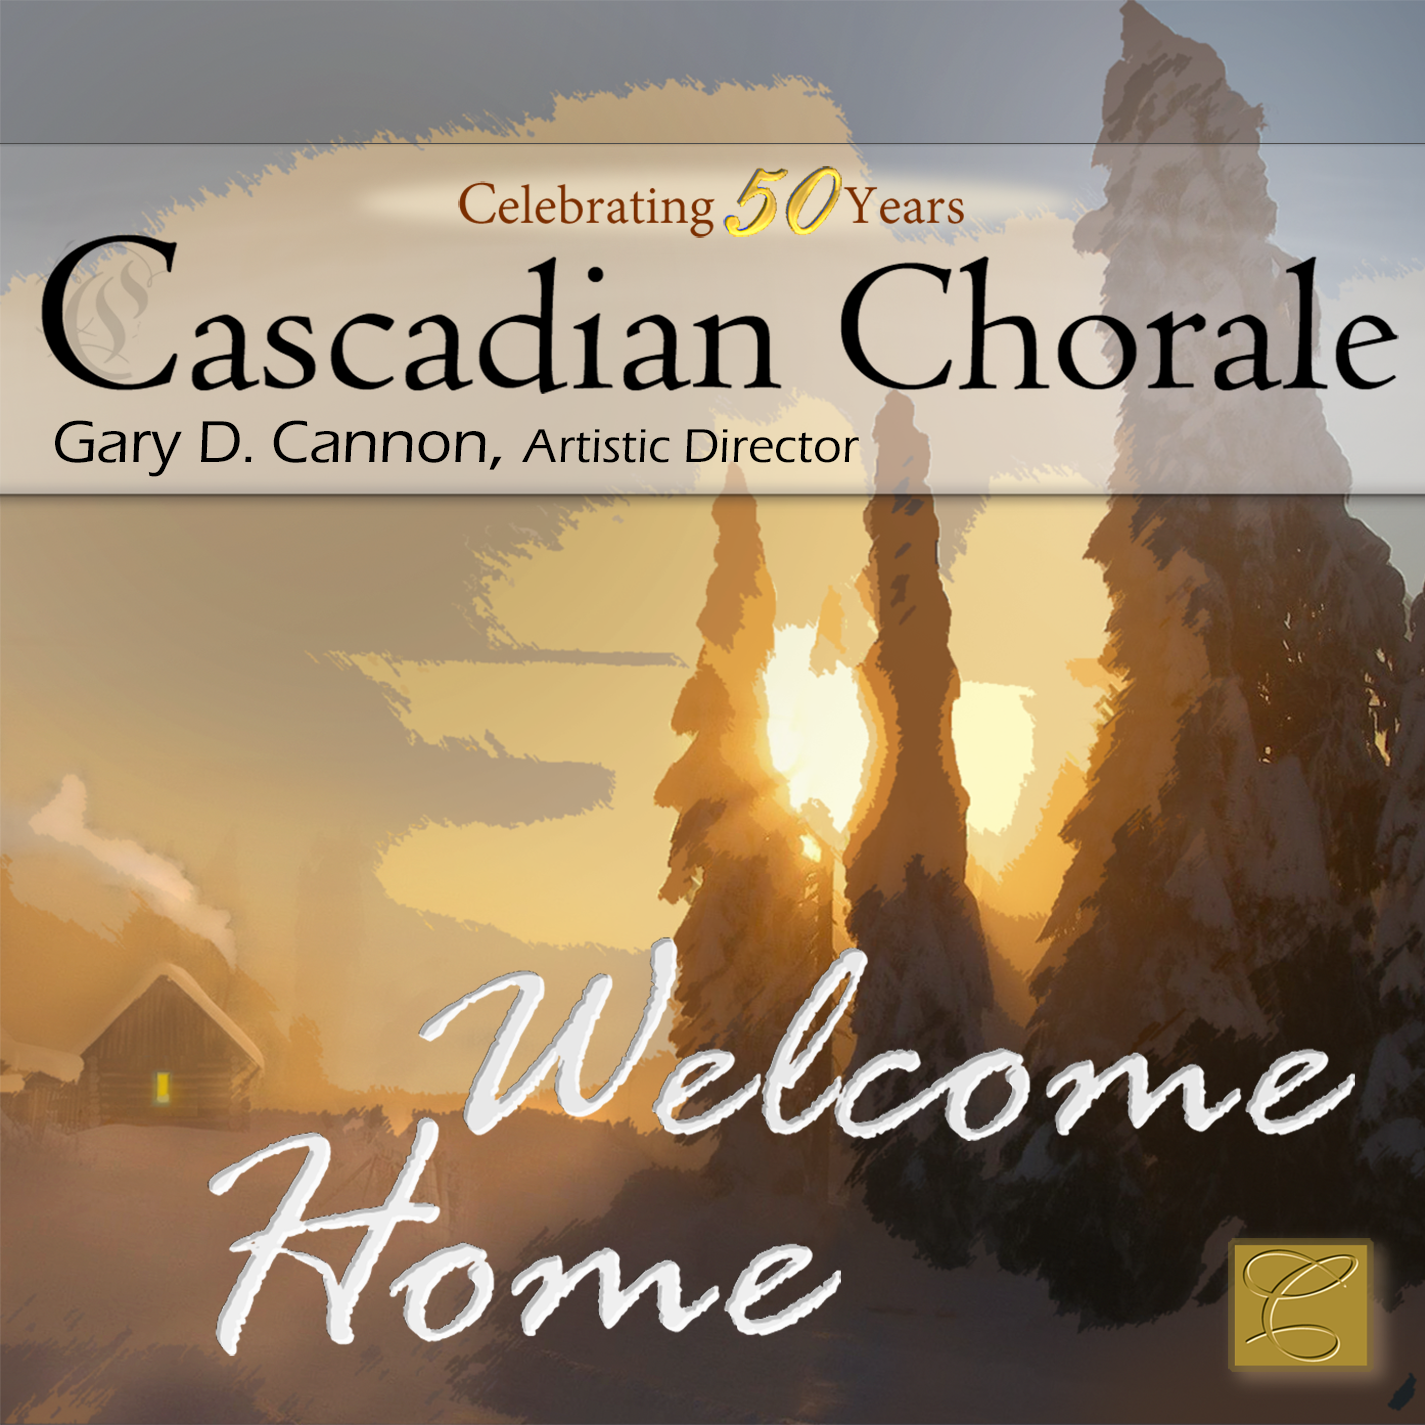 Welcome home (CD cover)